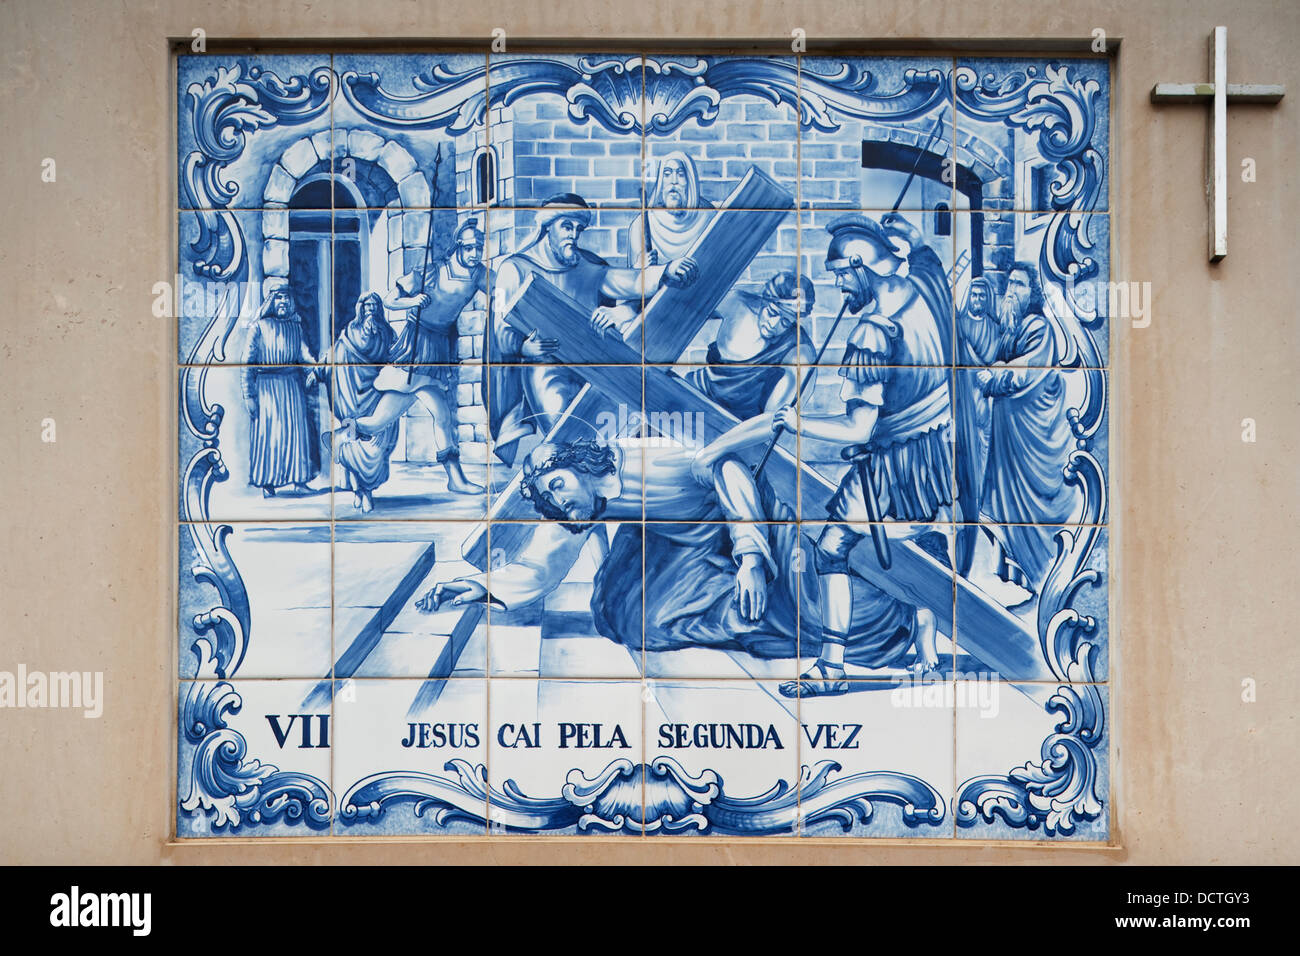 Painted ceramic tile depicting the seventh station of the cross as painted ceramic tile depicting the seventh station of the cross as jesus falls for the second time porto de mos portugal dailygadgetfo Image collections